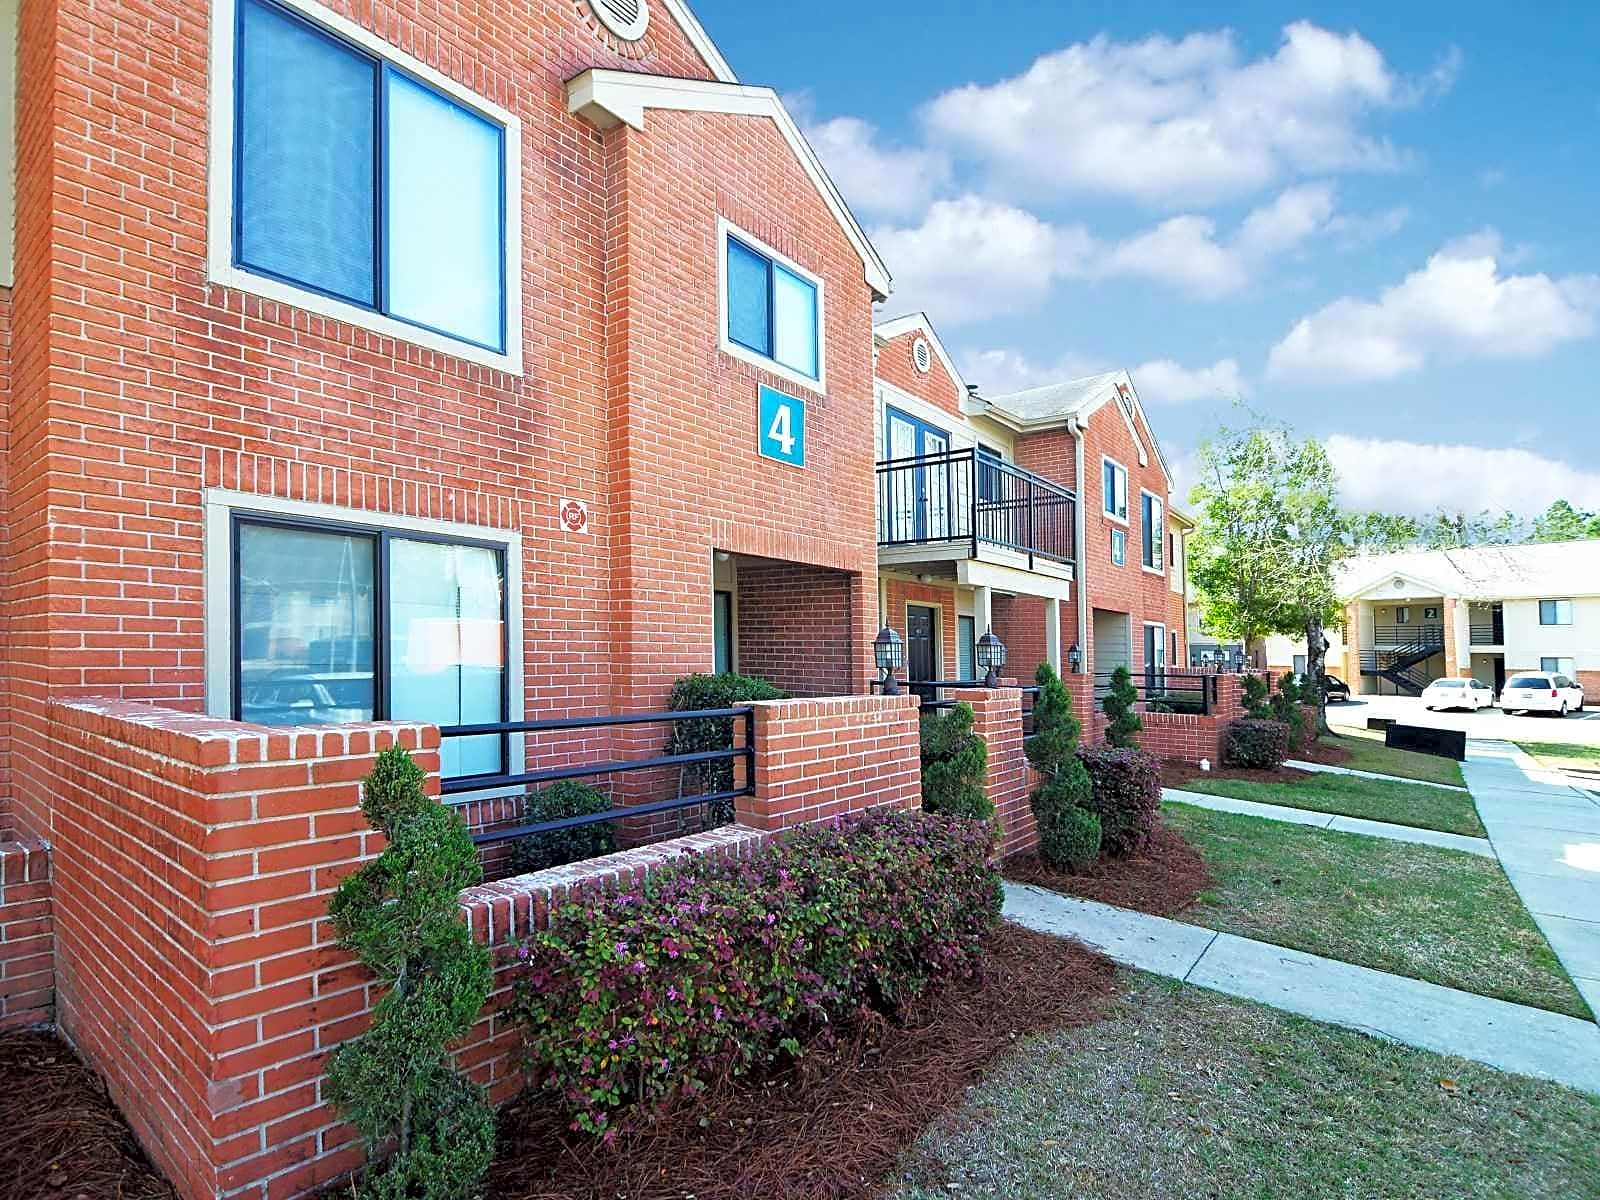 Photo: Tallahassee Apartment for Rent - $394.00 / month; 2 Bd & 1 Ba